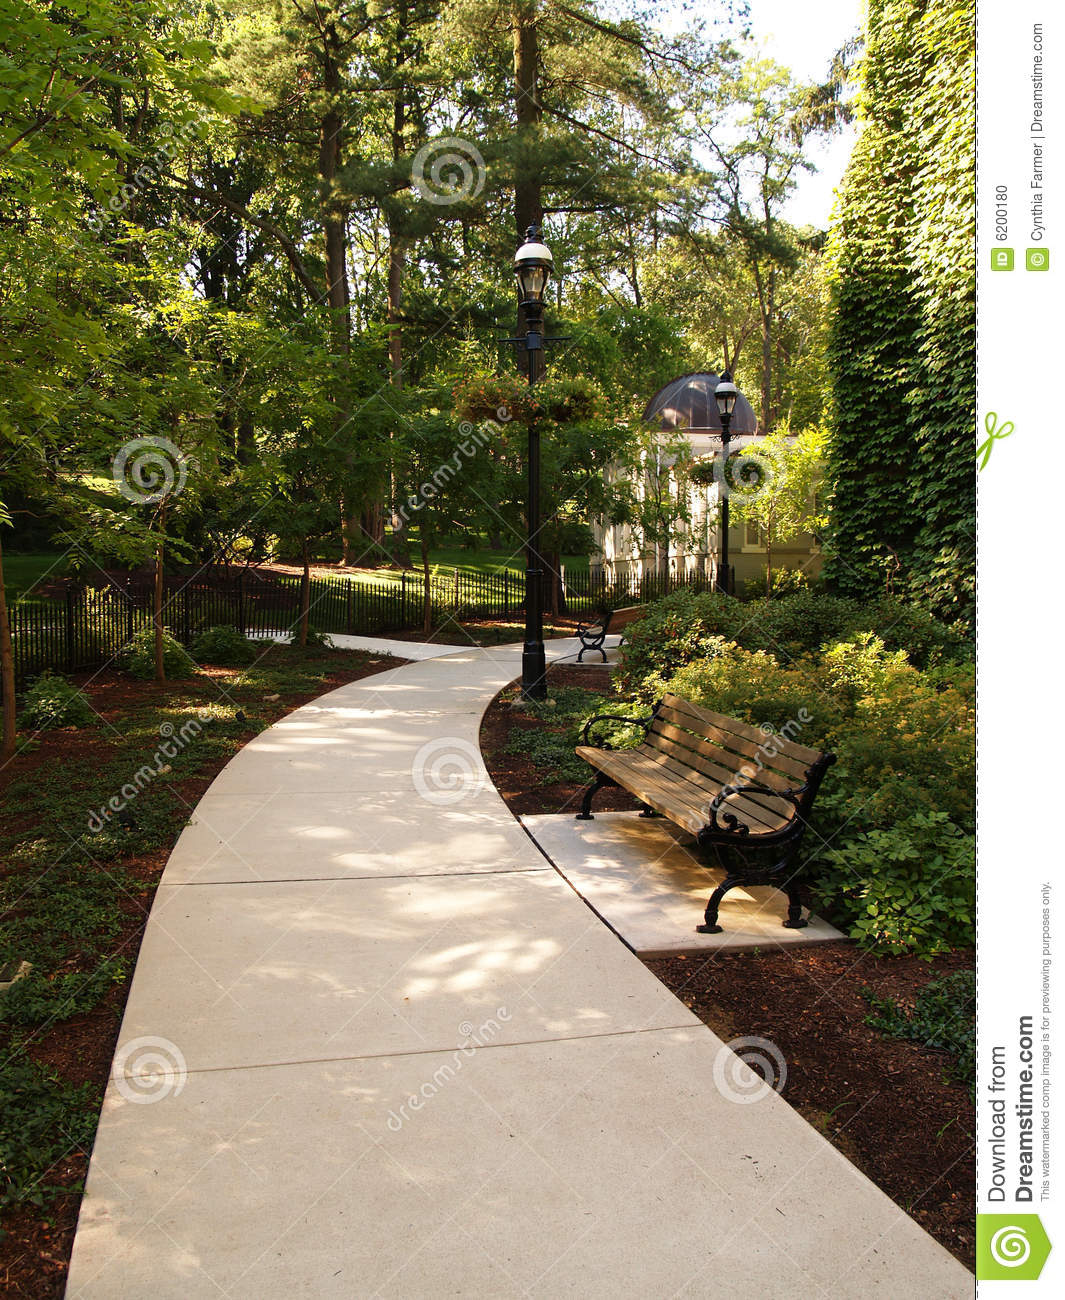 Shady Walkway And Park Bench Stock Photo - Image: 6200180